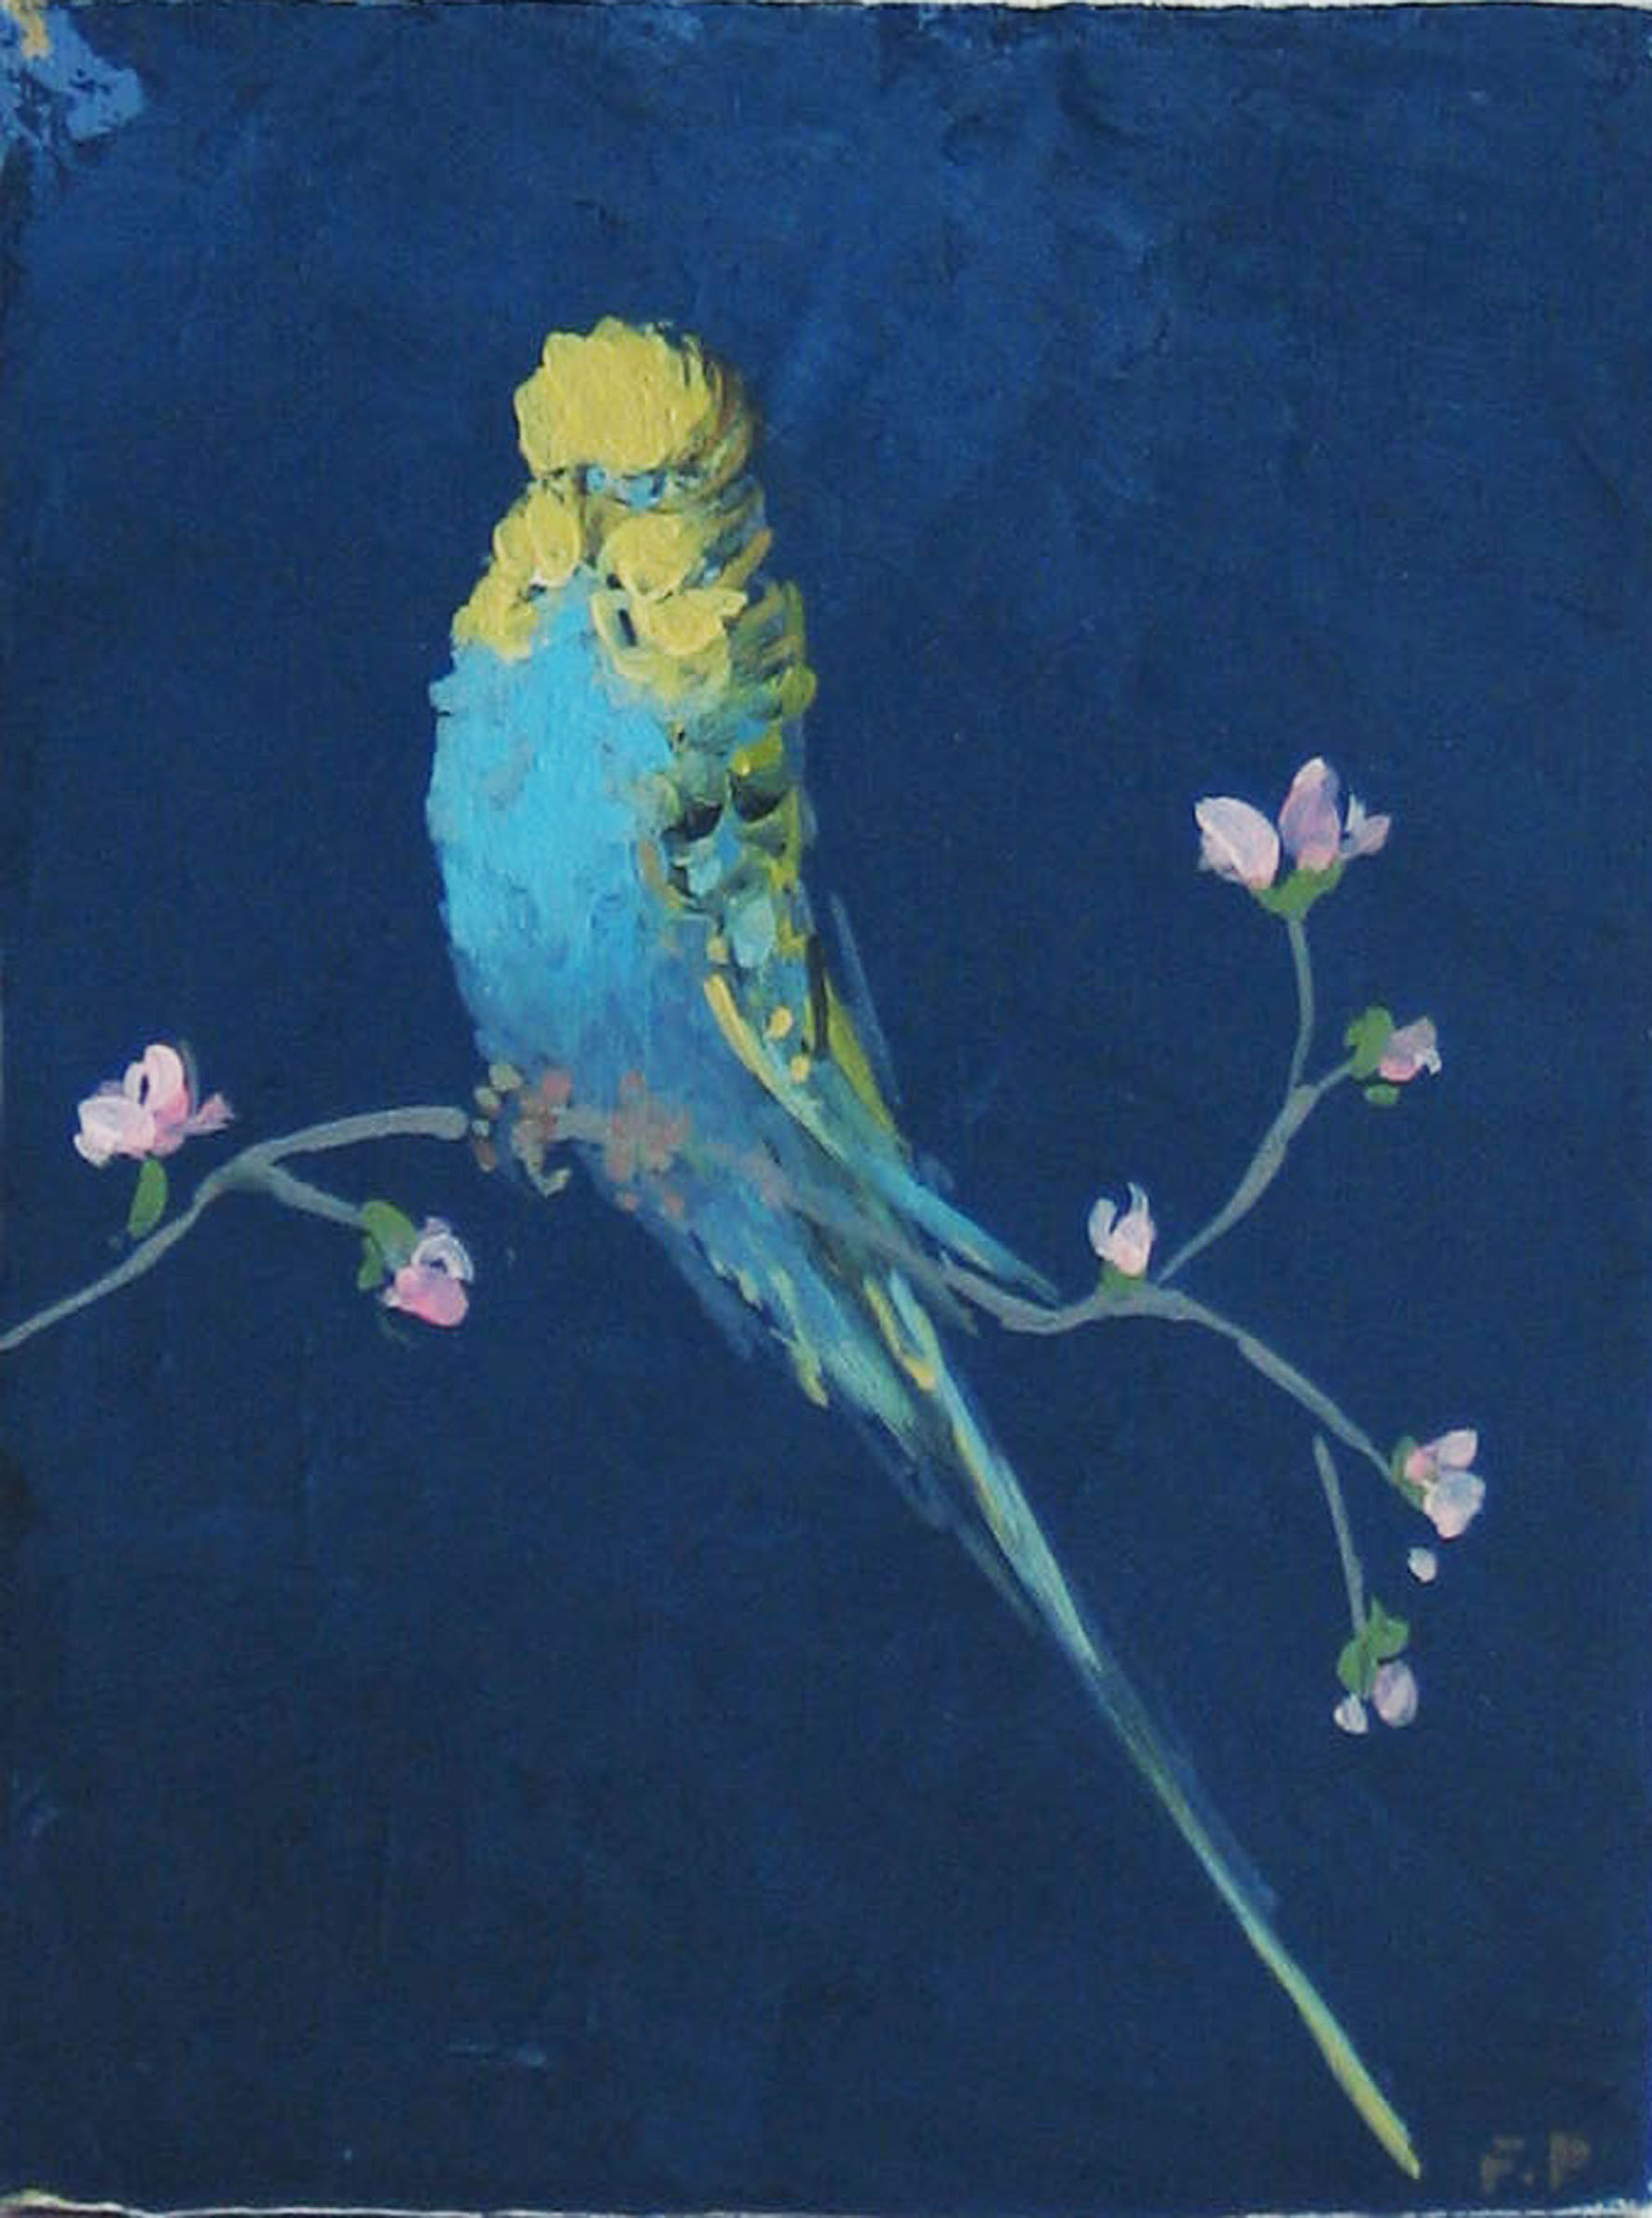 Budgie-with-blossom-on-blue-background-20cm-x-15cm